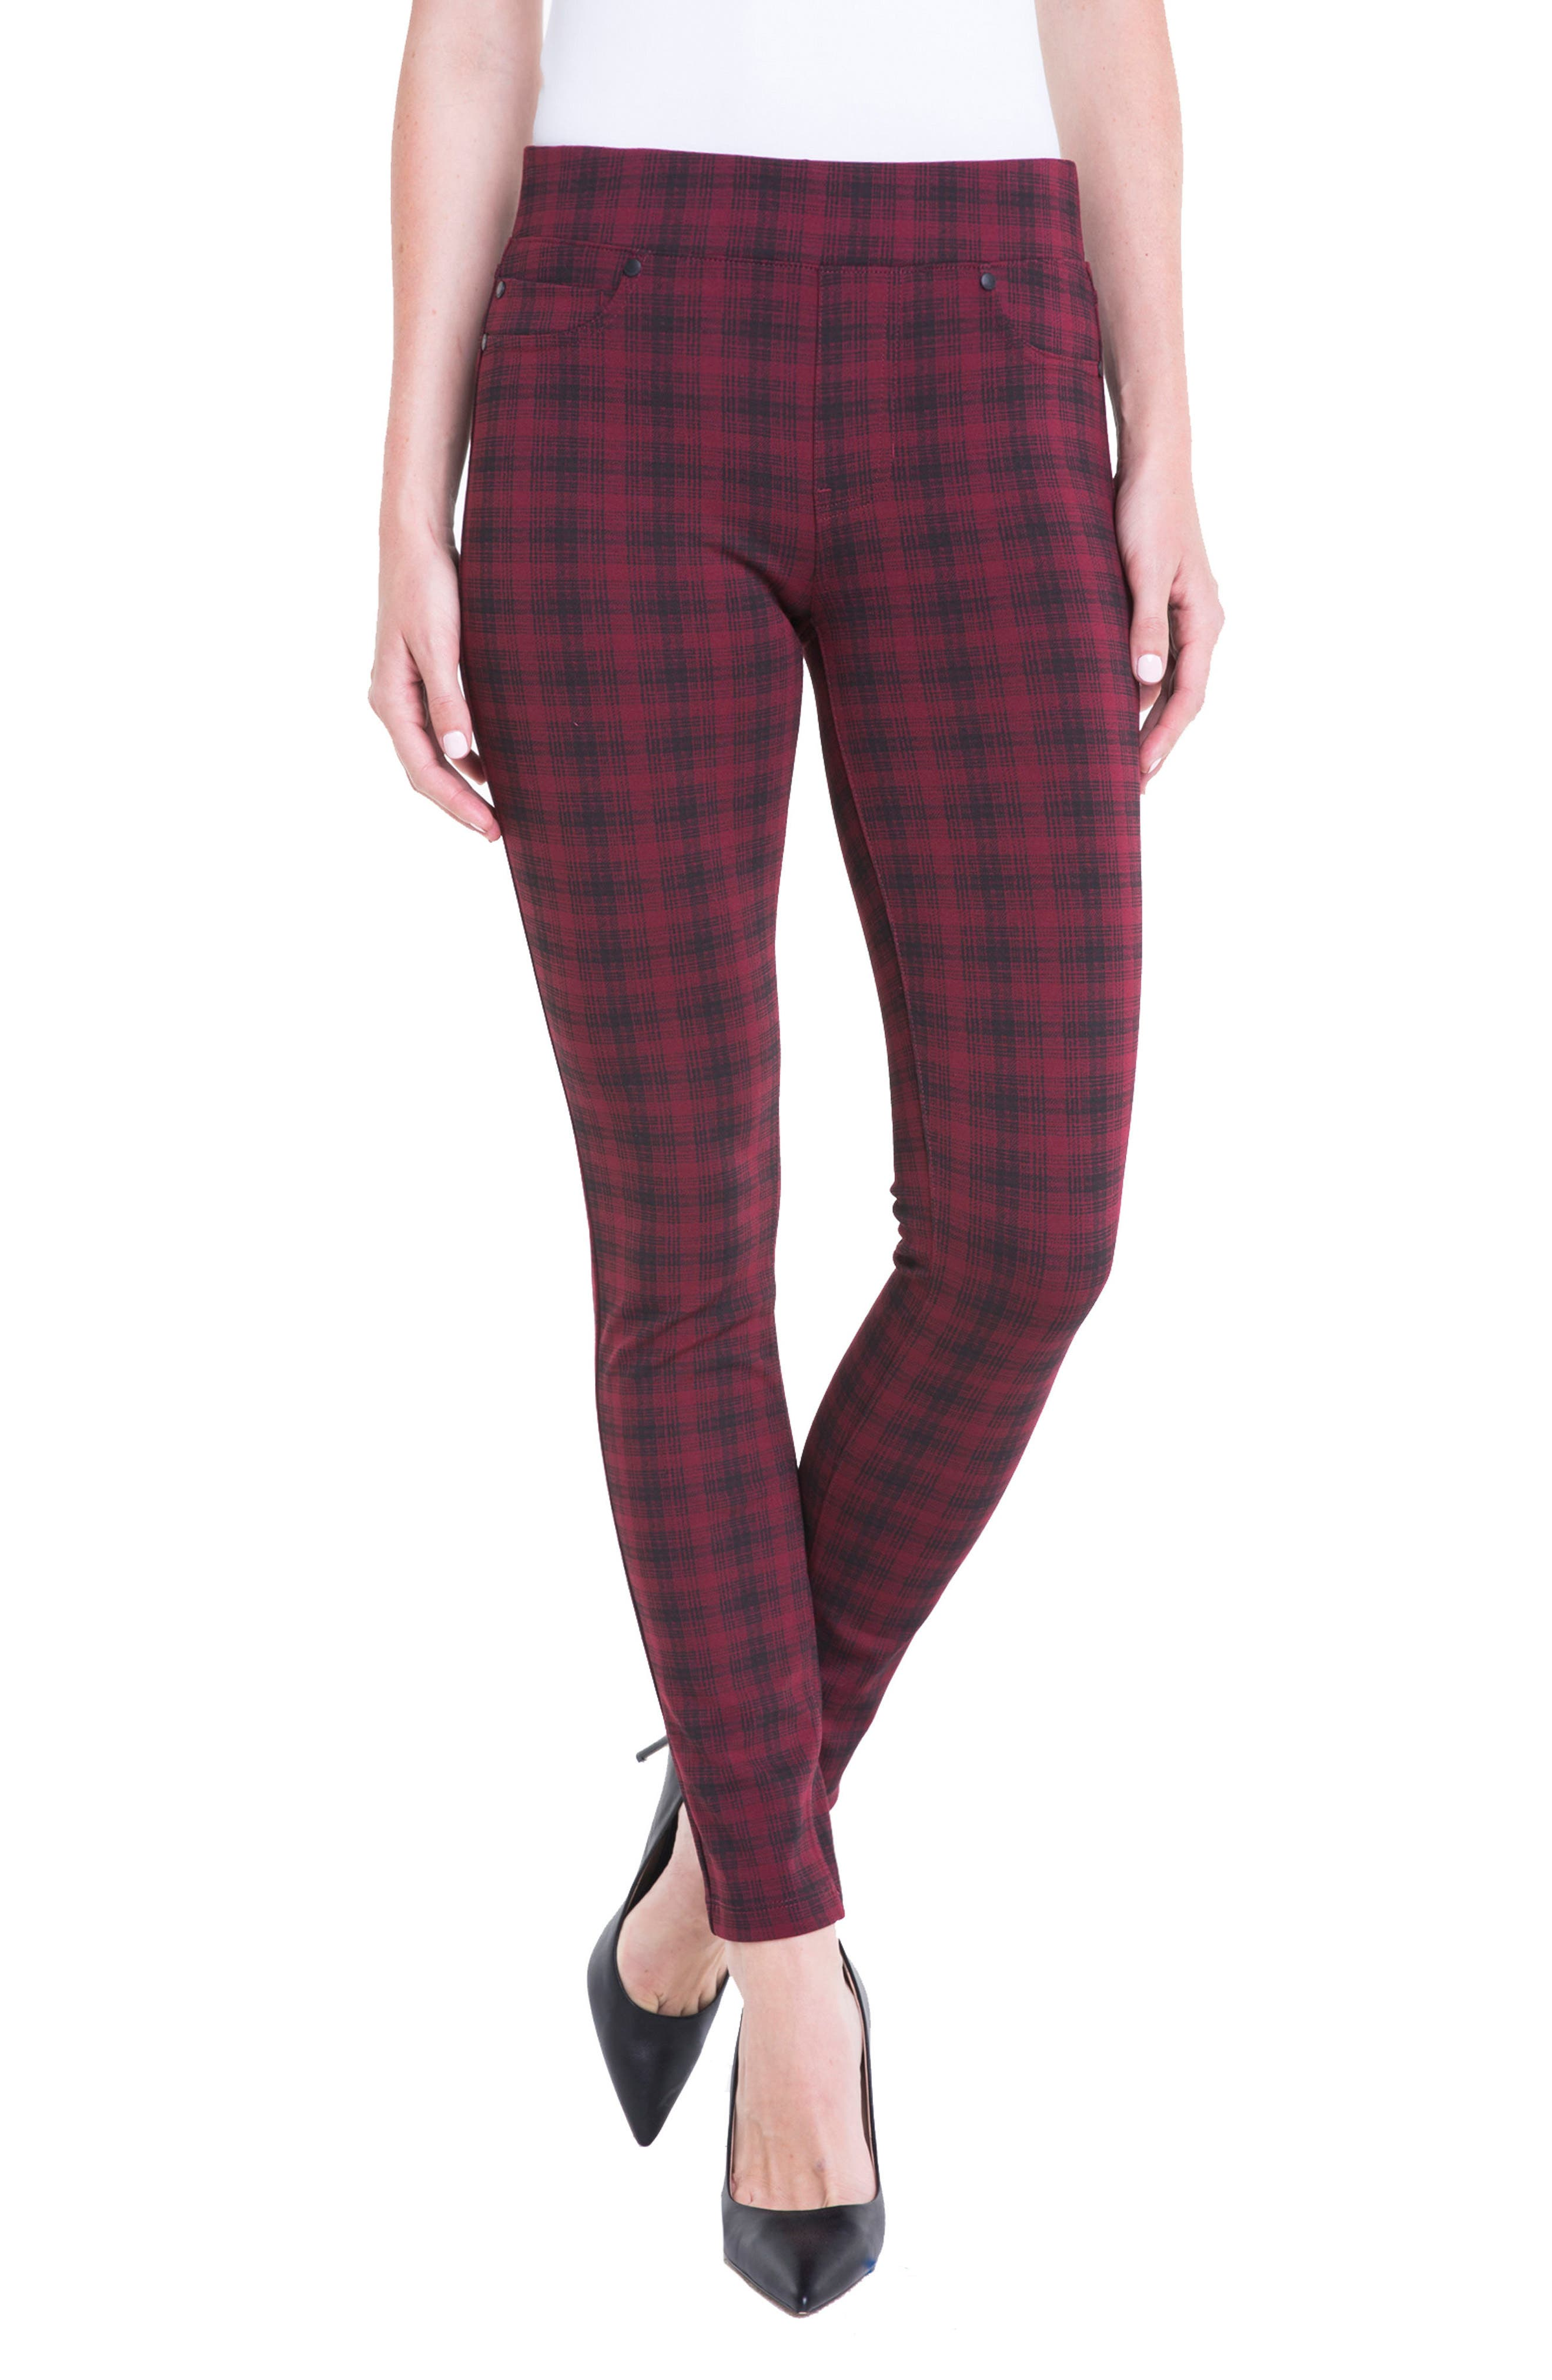 Liverpool Jeans Company Sienna Plaid Leggings